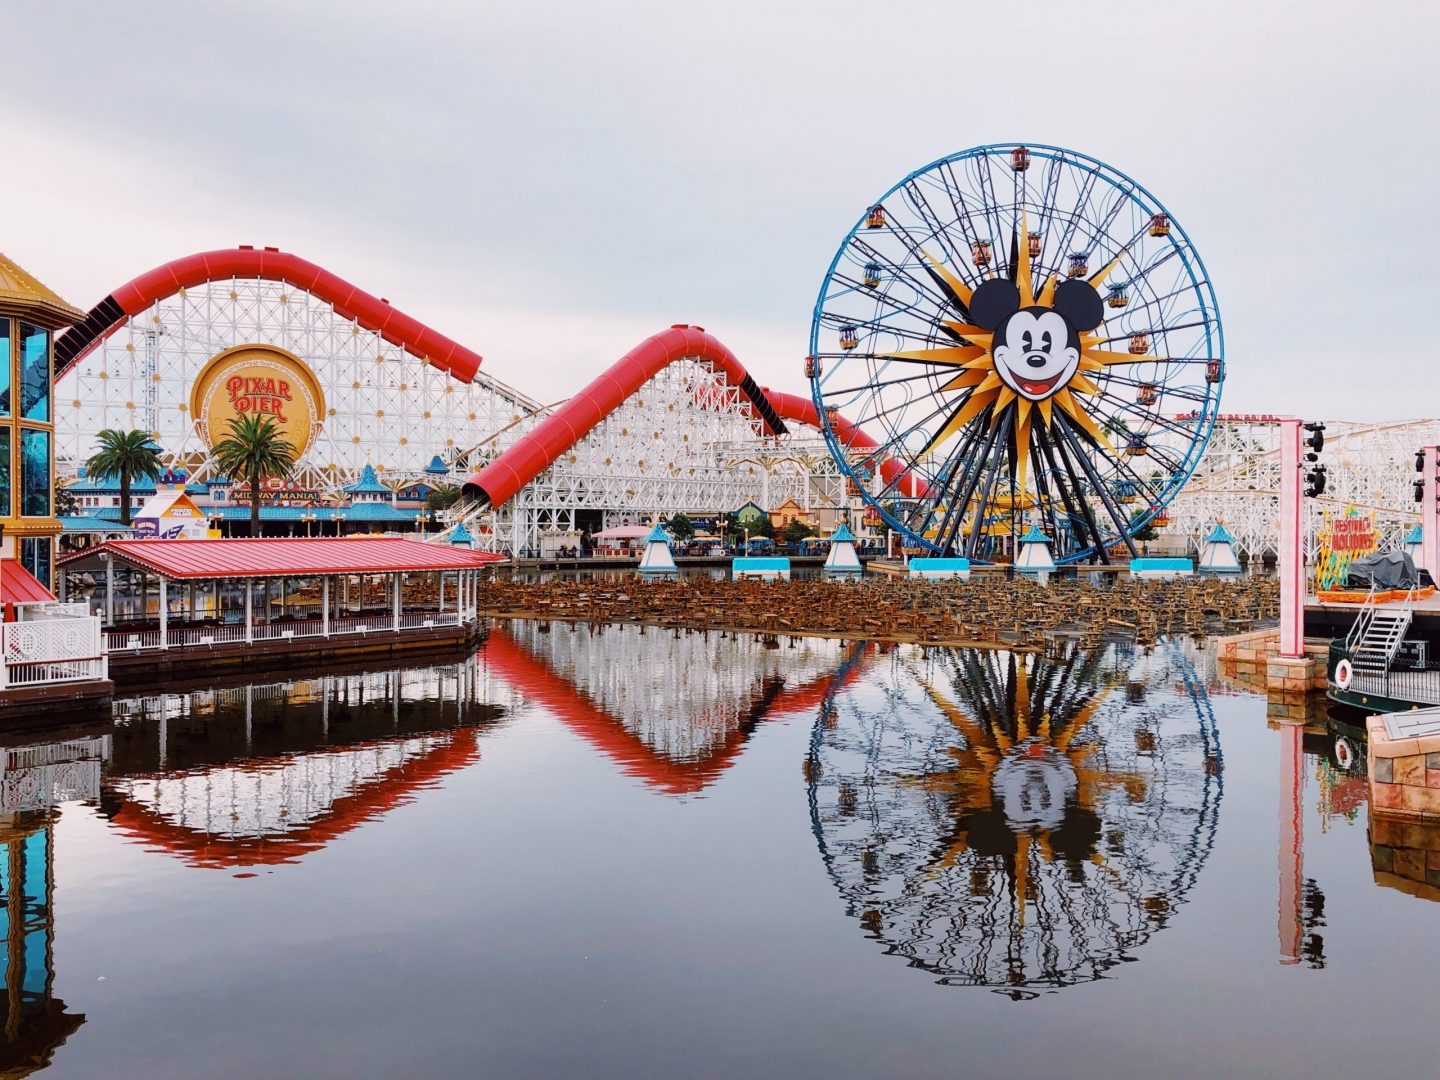 Armchair Travel: How To Experience Disneyland From Home